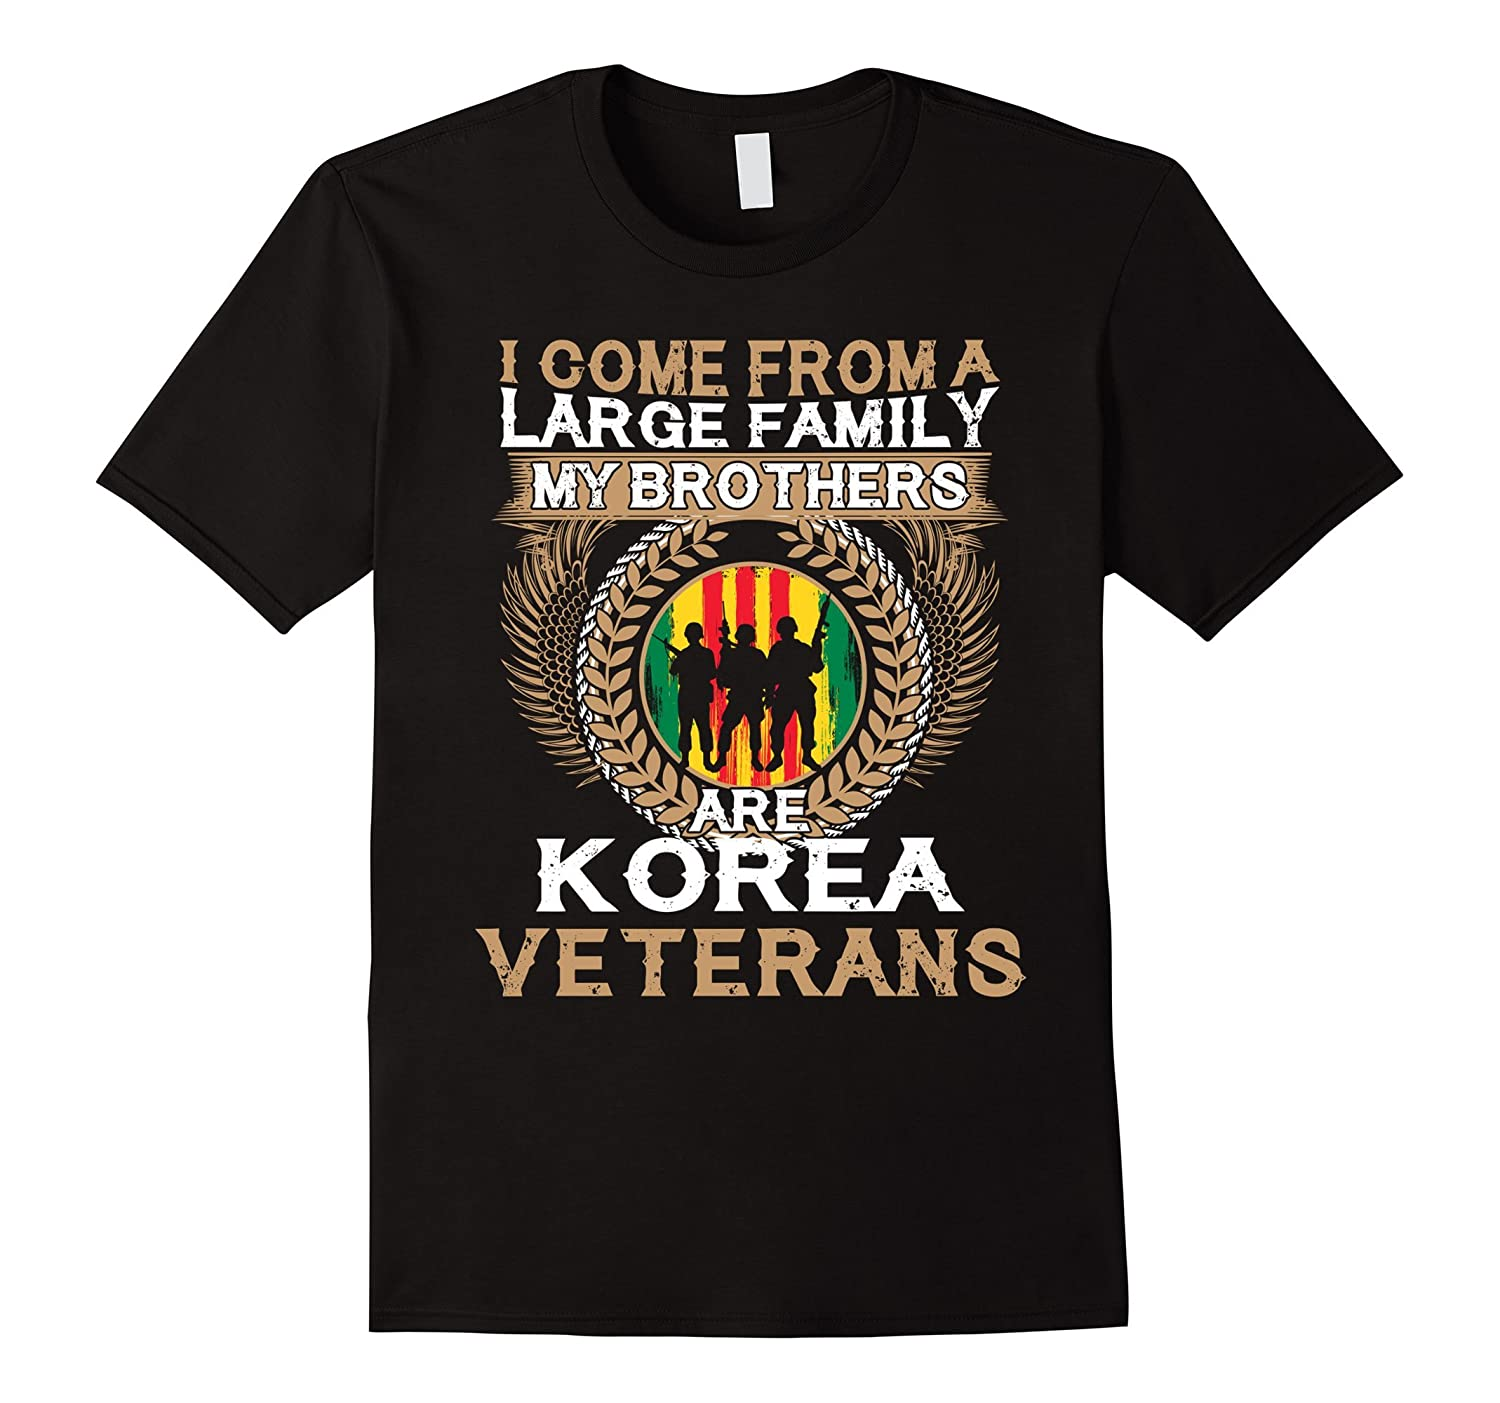 Korea Veterans Tshirt I Come From A Large Family Gift-TJ